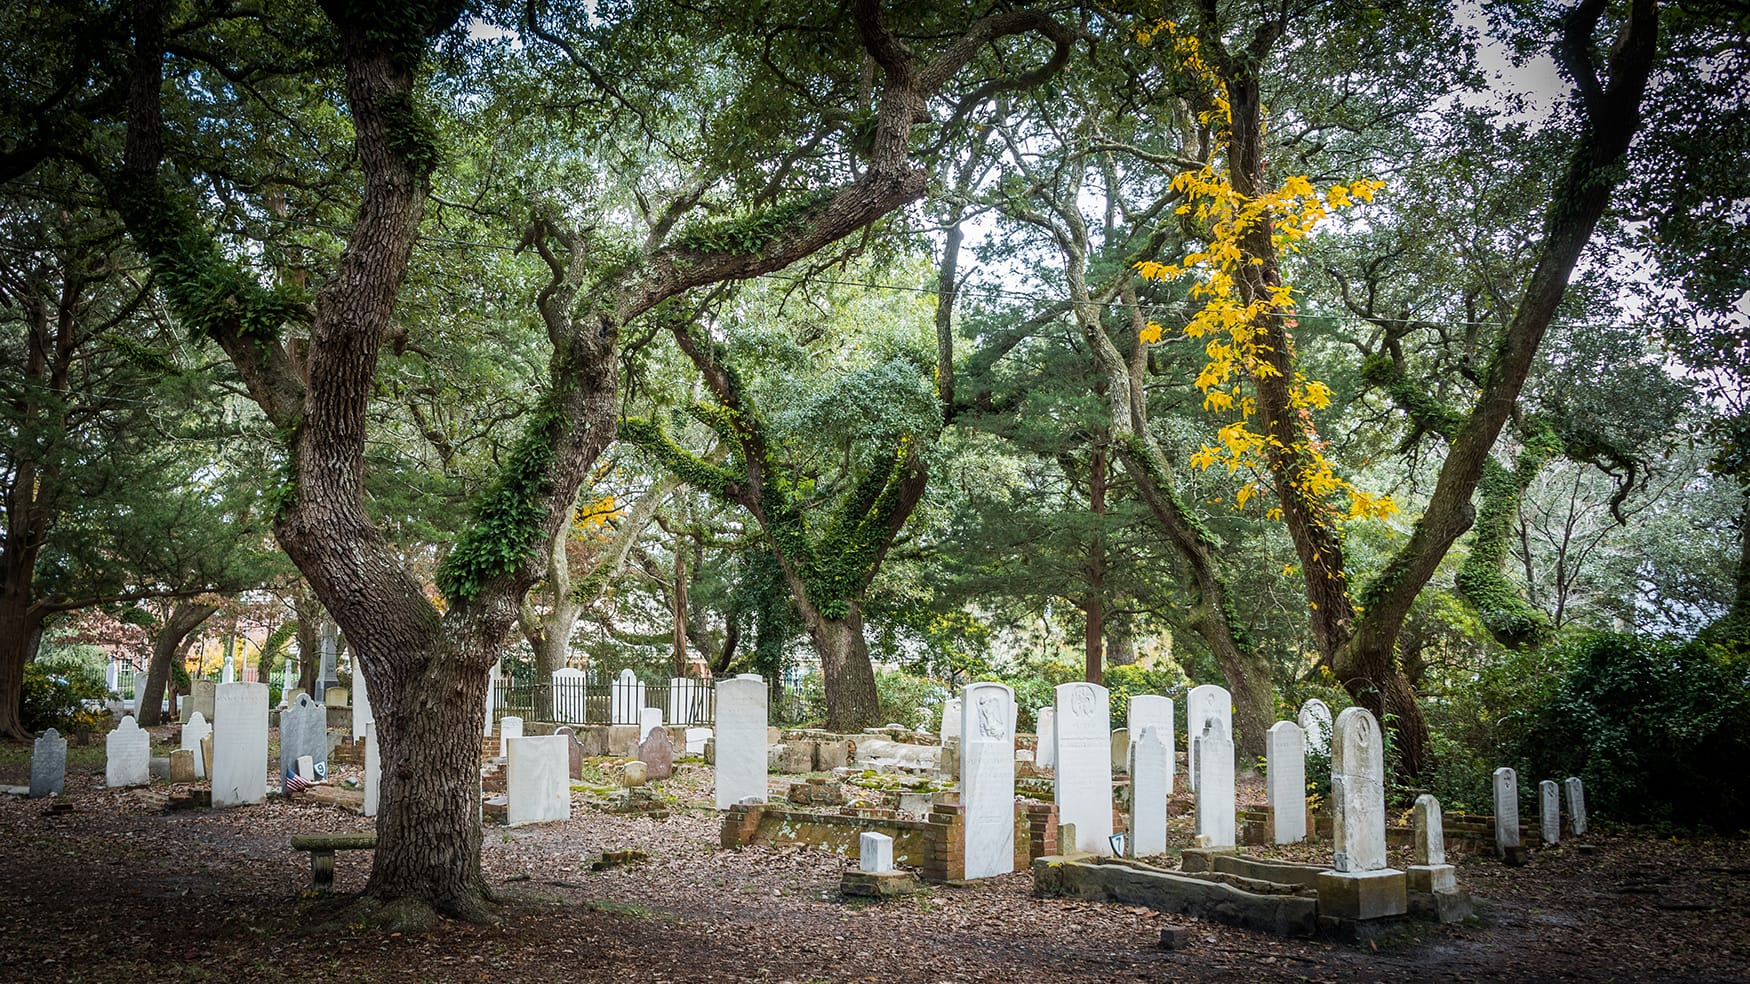 Friedhof in Beaufort, North Carolina